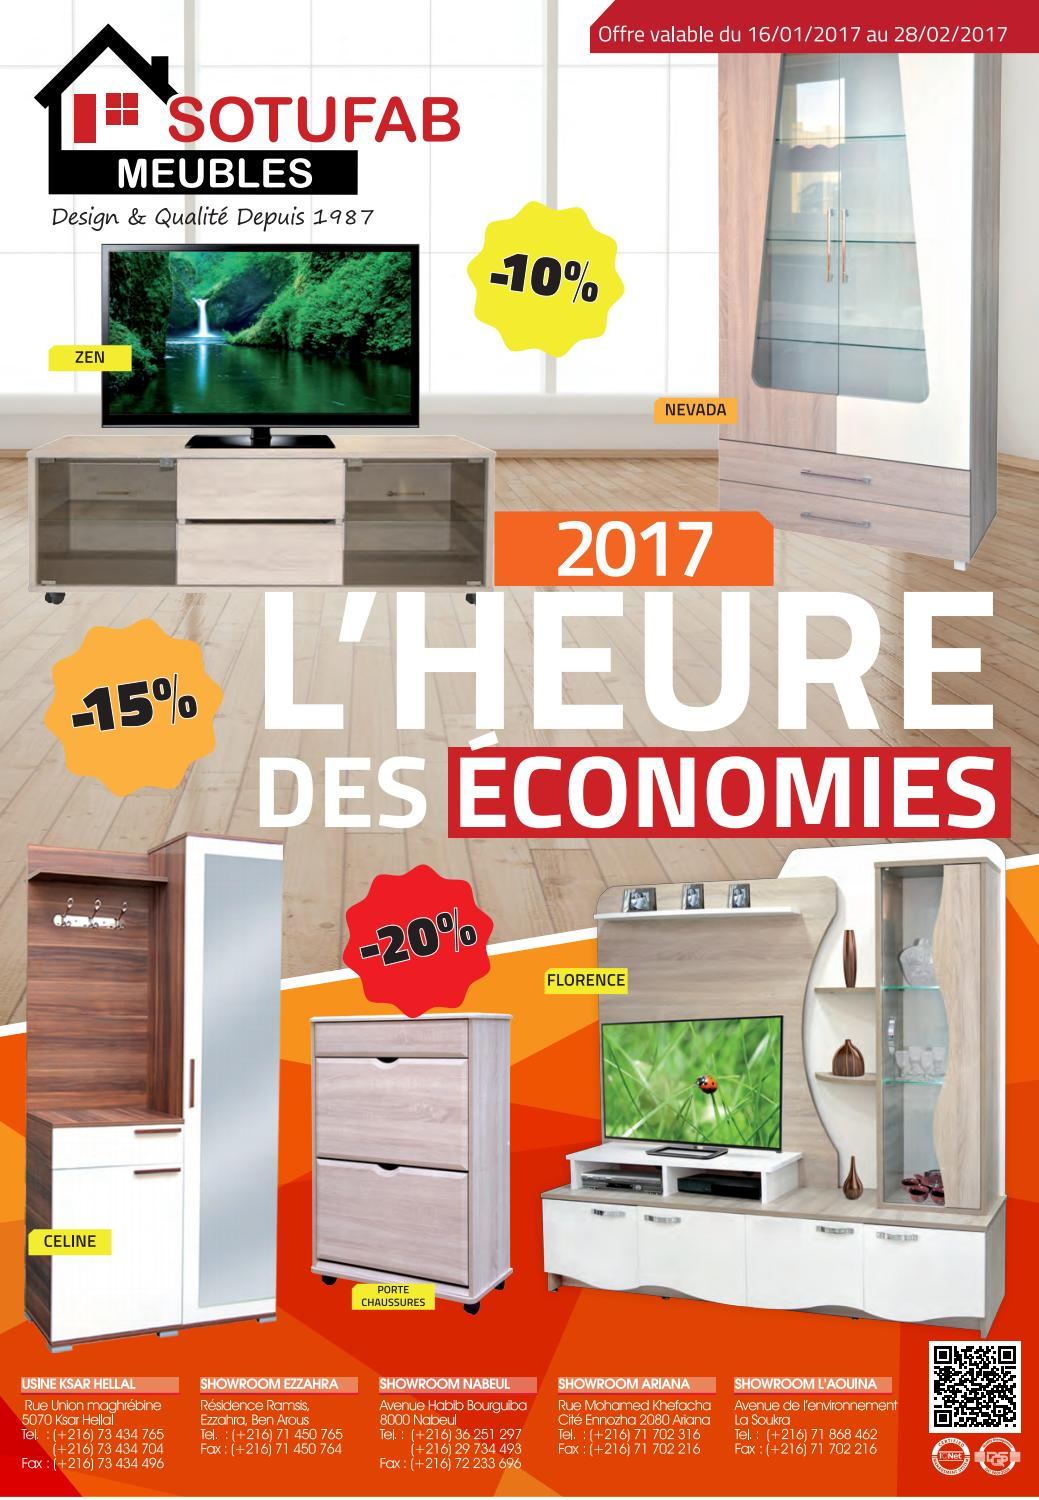 Catalogue Sotufab Meubles 2017 By Sotufab Tn Issuu # Photos De Meubles